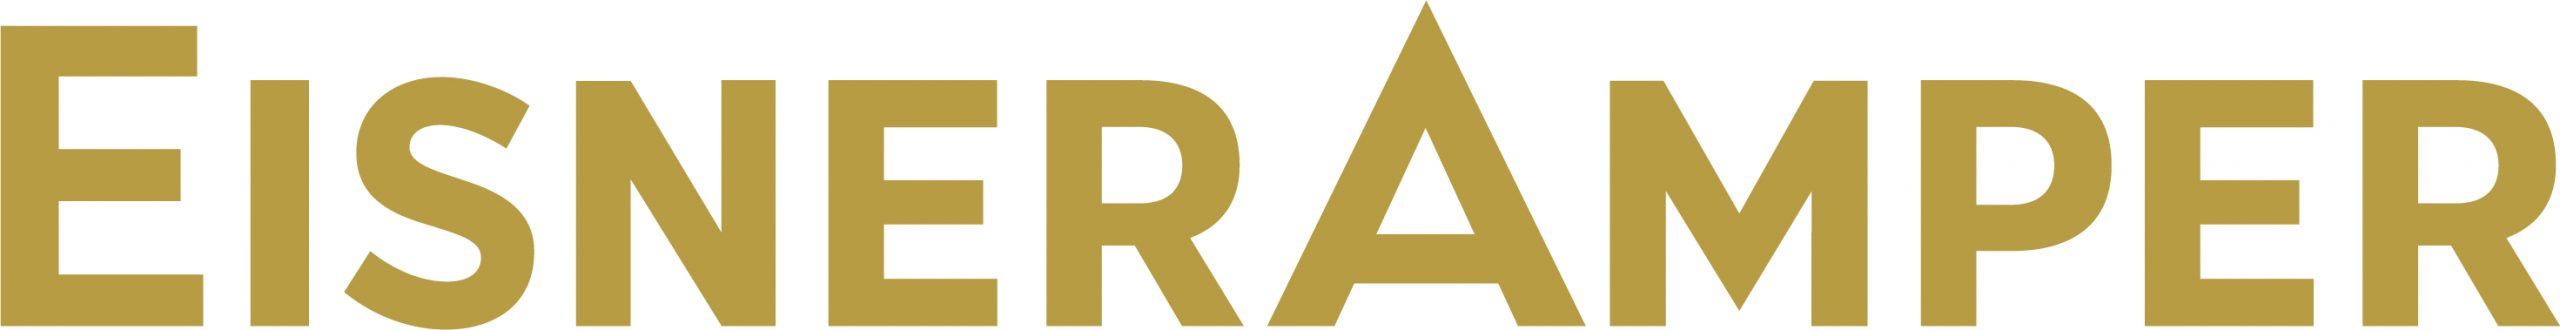 LOGO new EisnerAmper-Gold7562